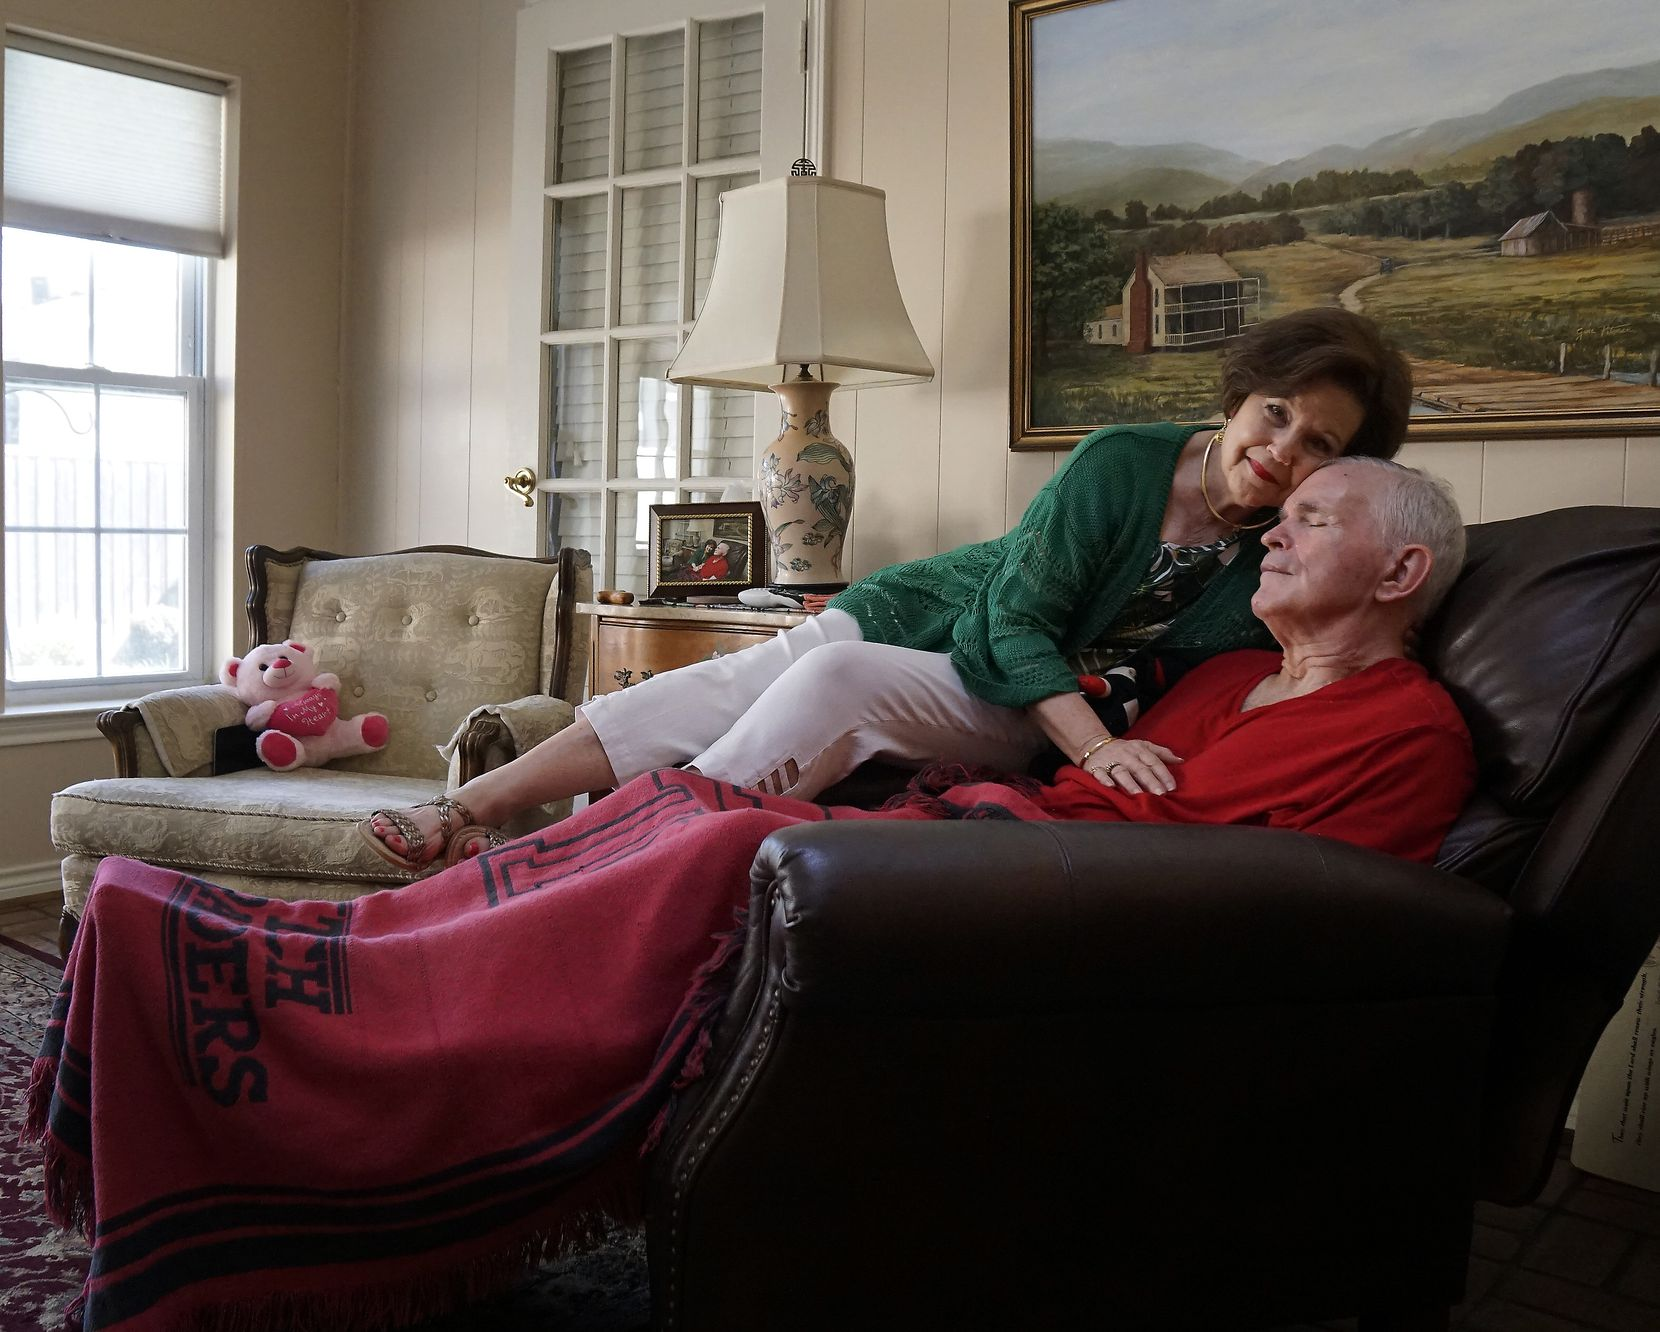 Dianne Bryant sits with her husband, Marc, who suffers from Lewy Body dementia at their home in Dallas, Texas on July 31, 2019.